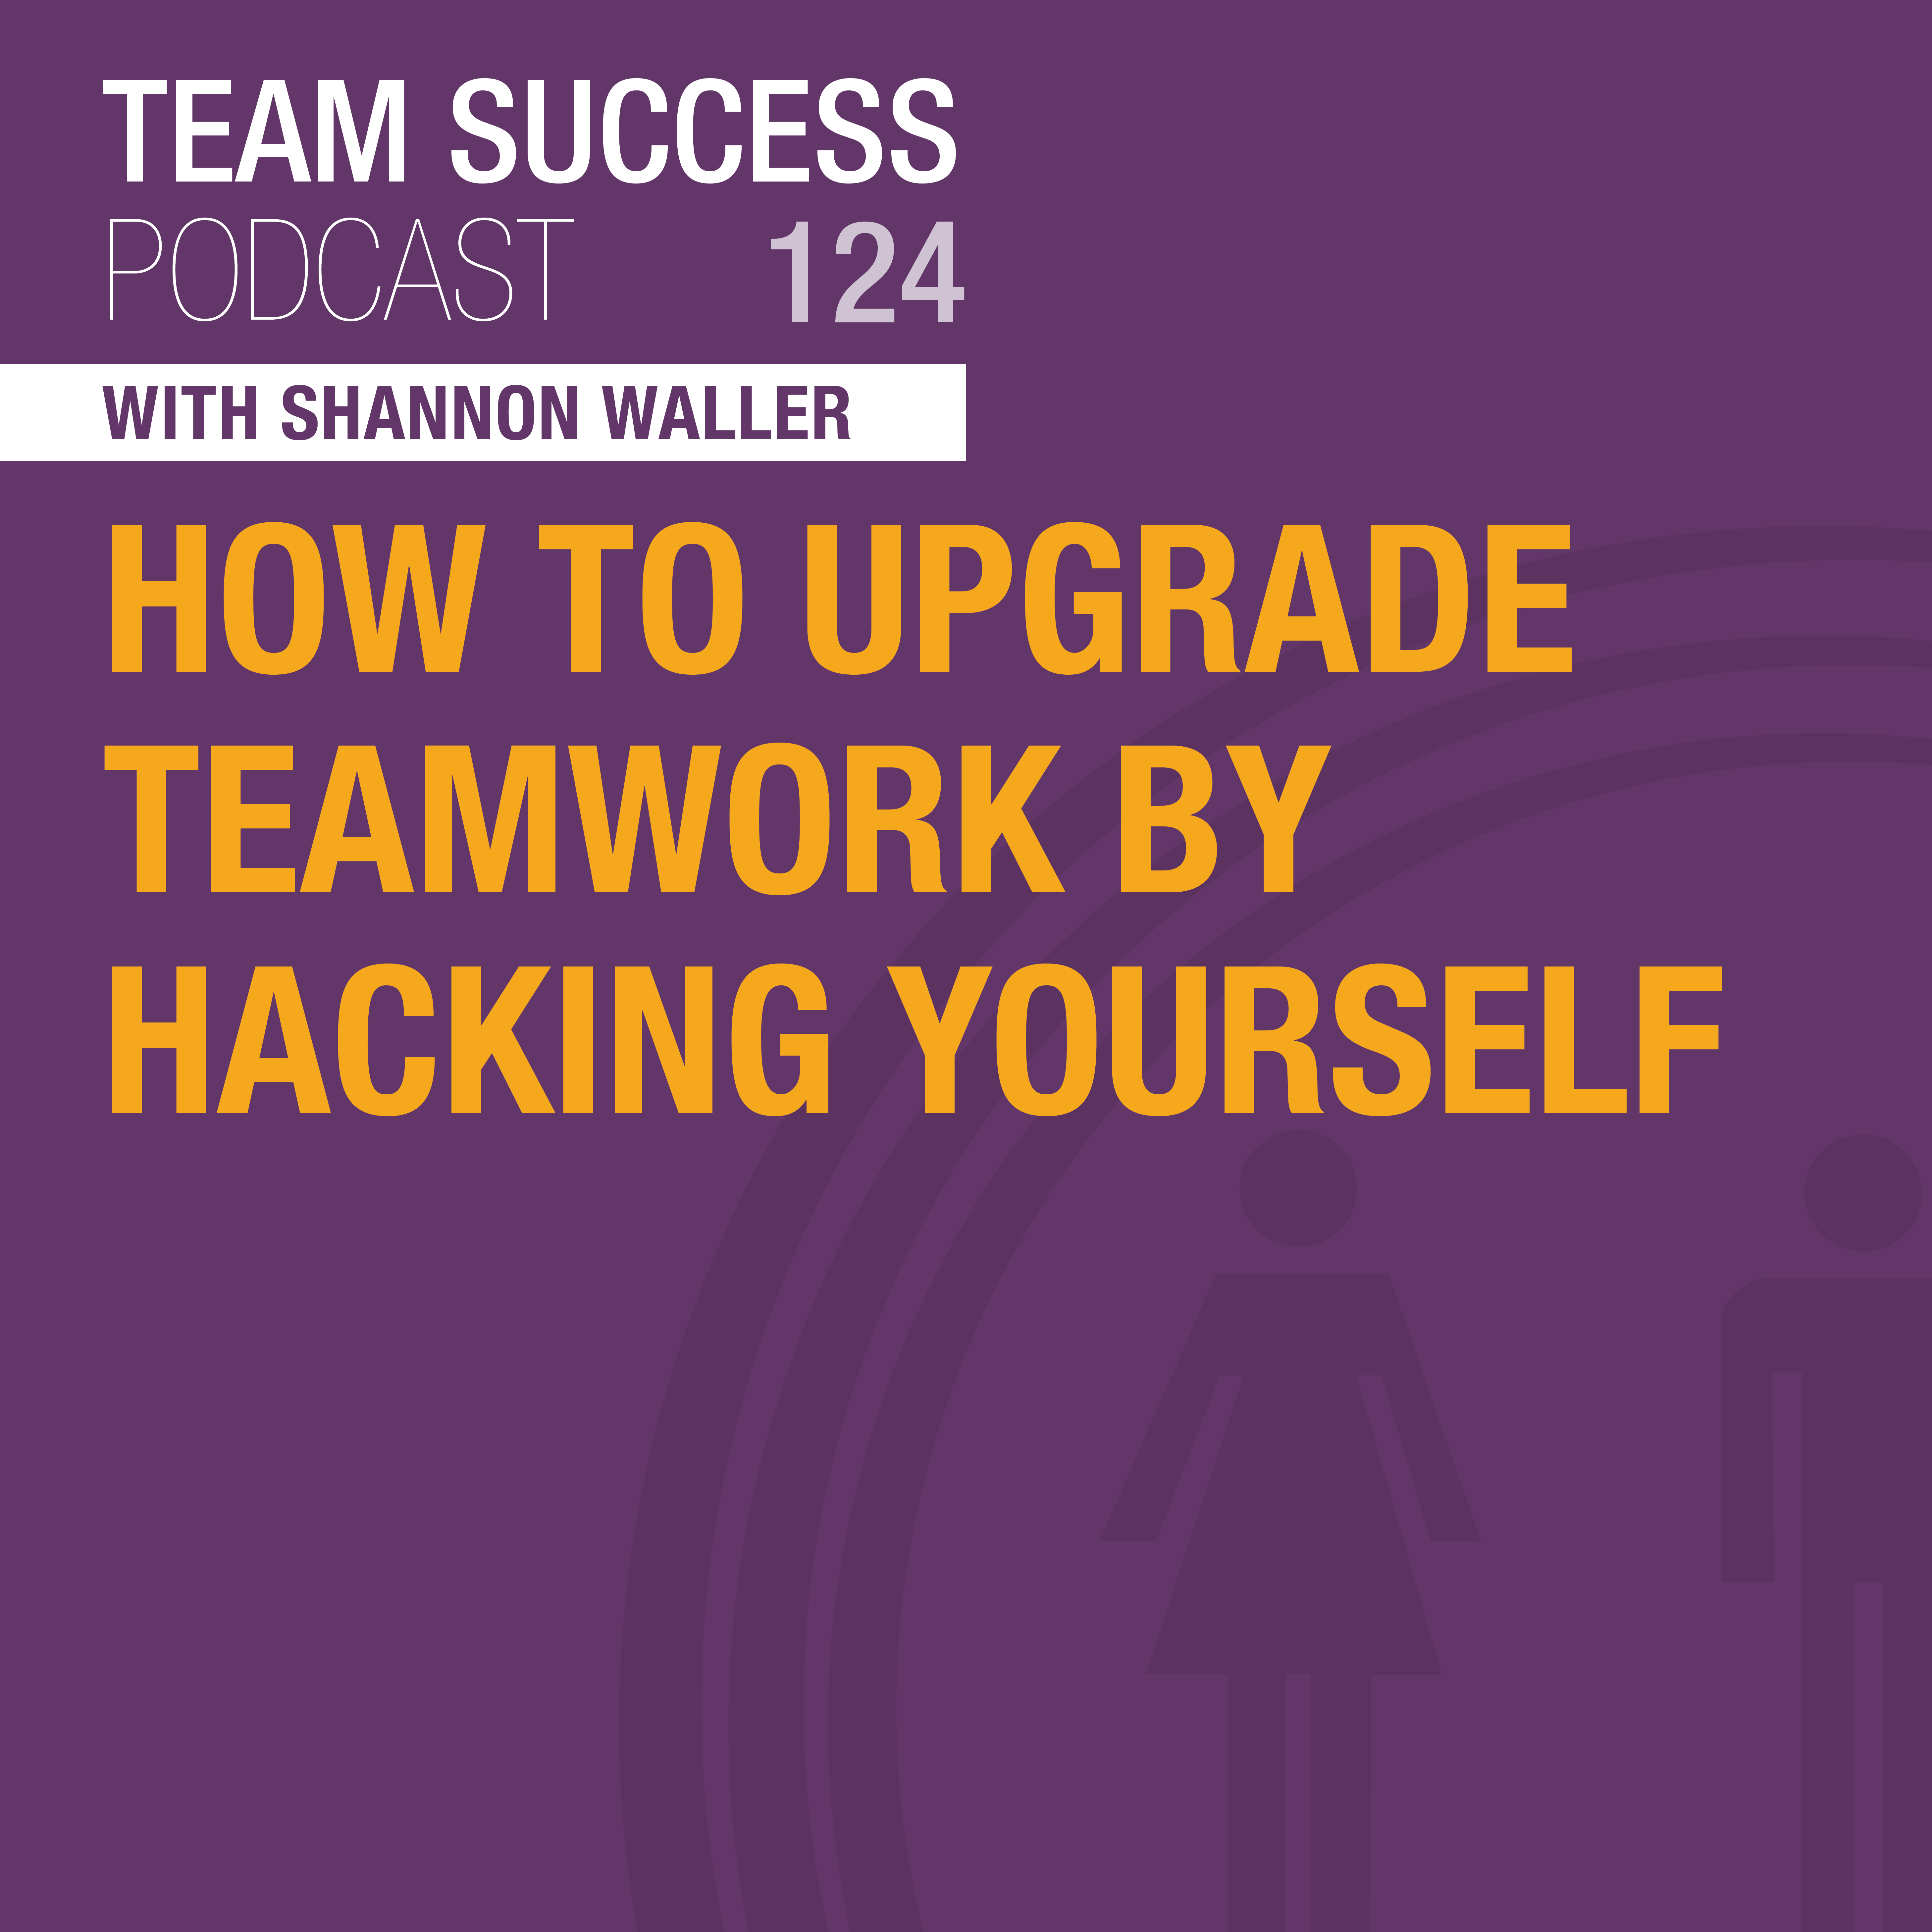 Team Success Podcast - How To Upgrade Teamwork By Hacking Yourself